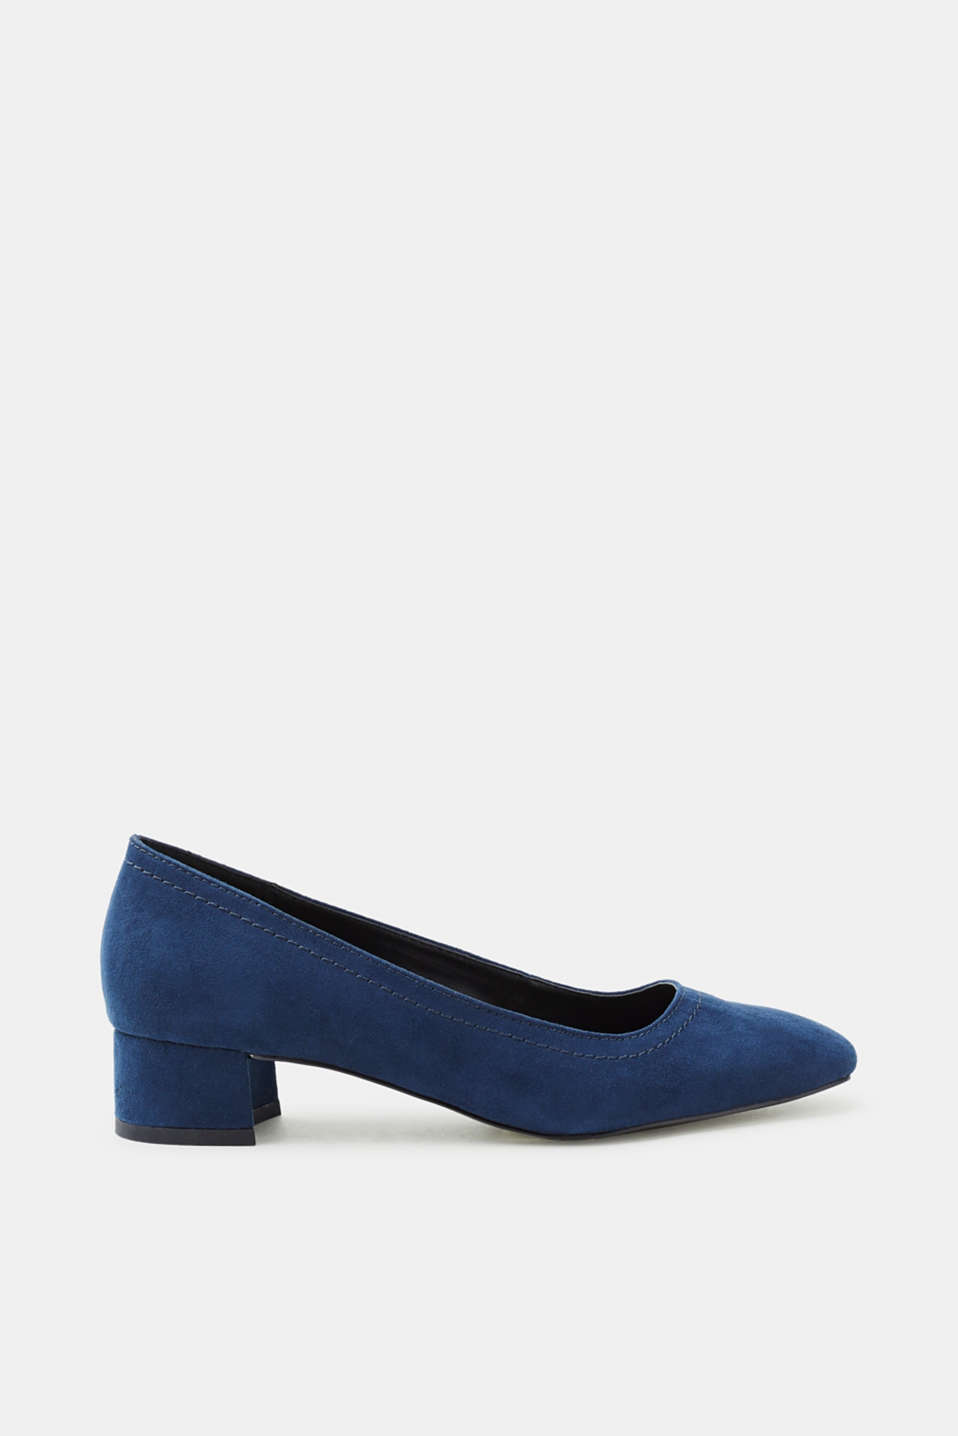 Esprit - Court shoes with a block heel, in faux suede